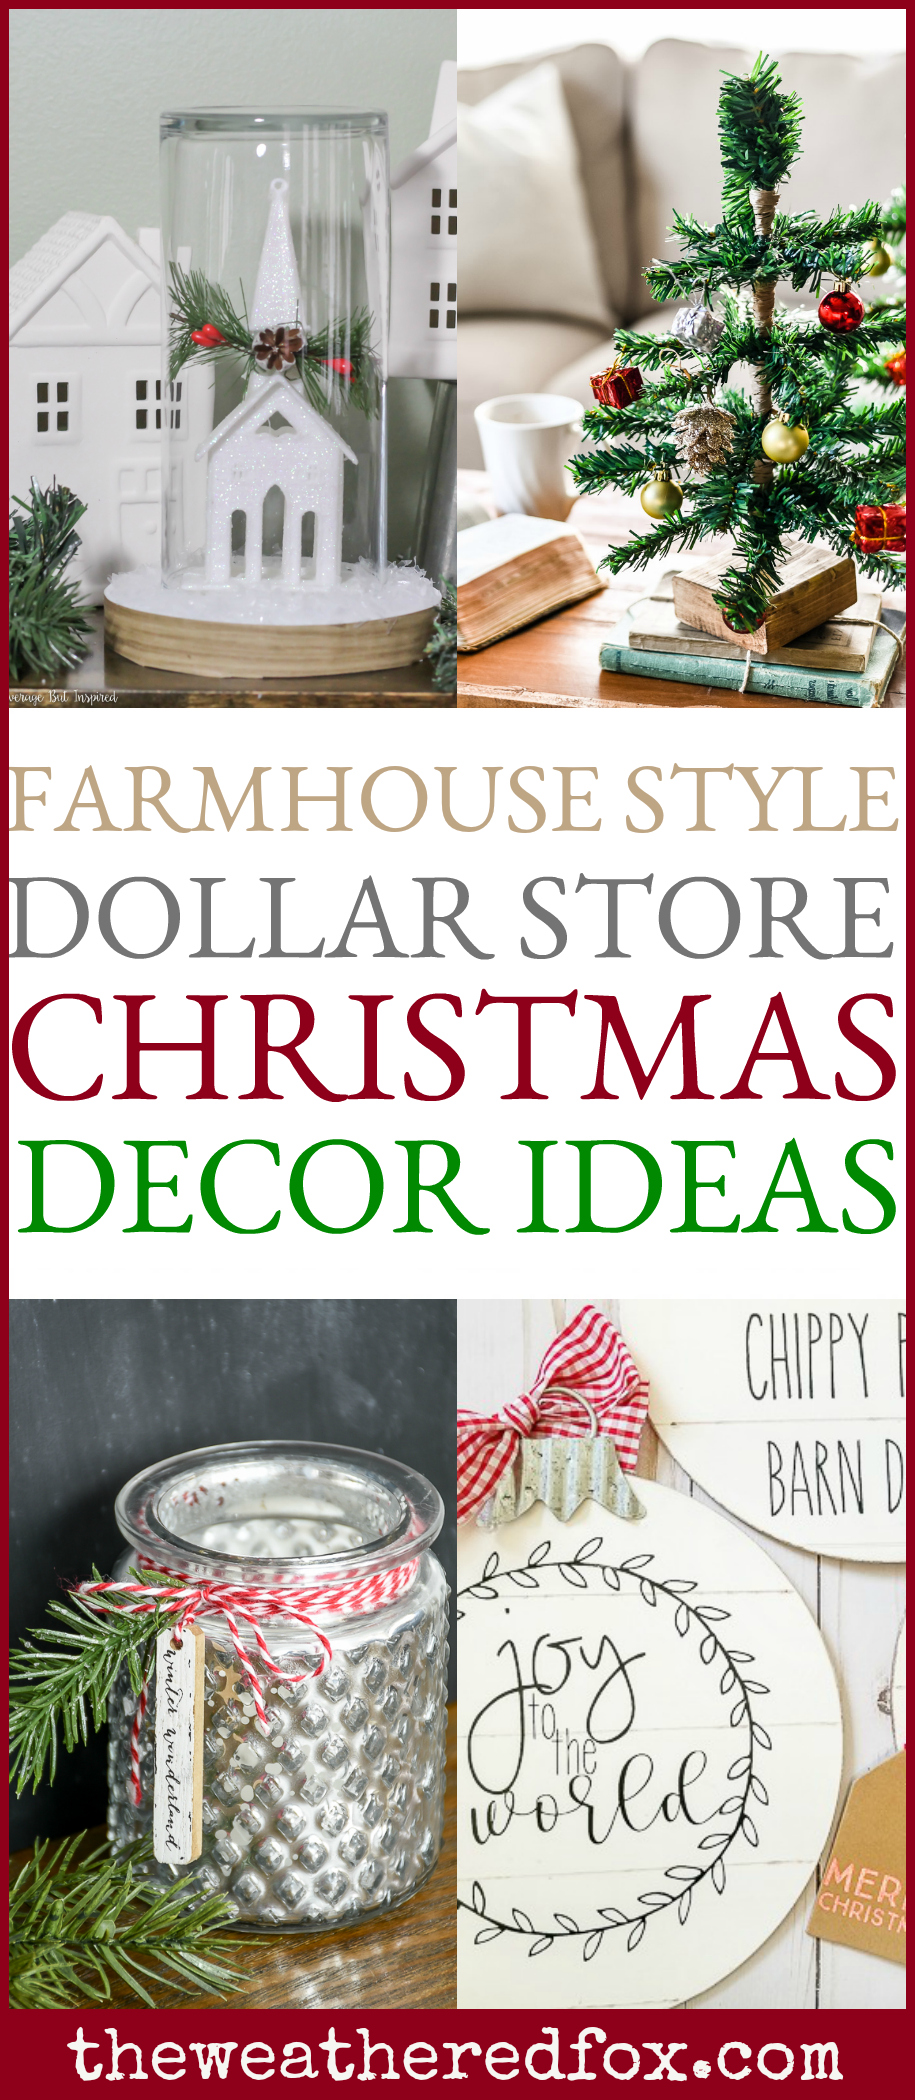 Dollar Store Christmas Decor Ideas The Weathered Fox